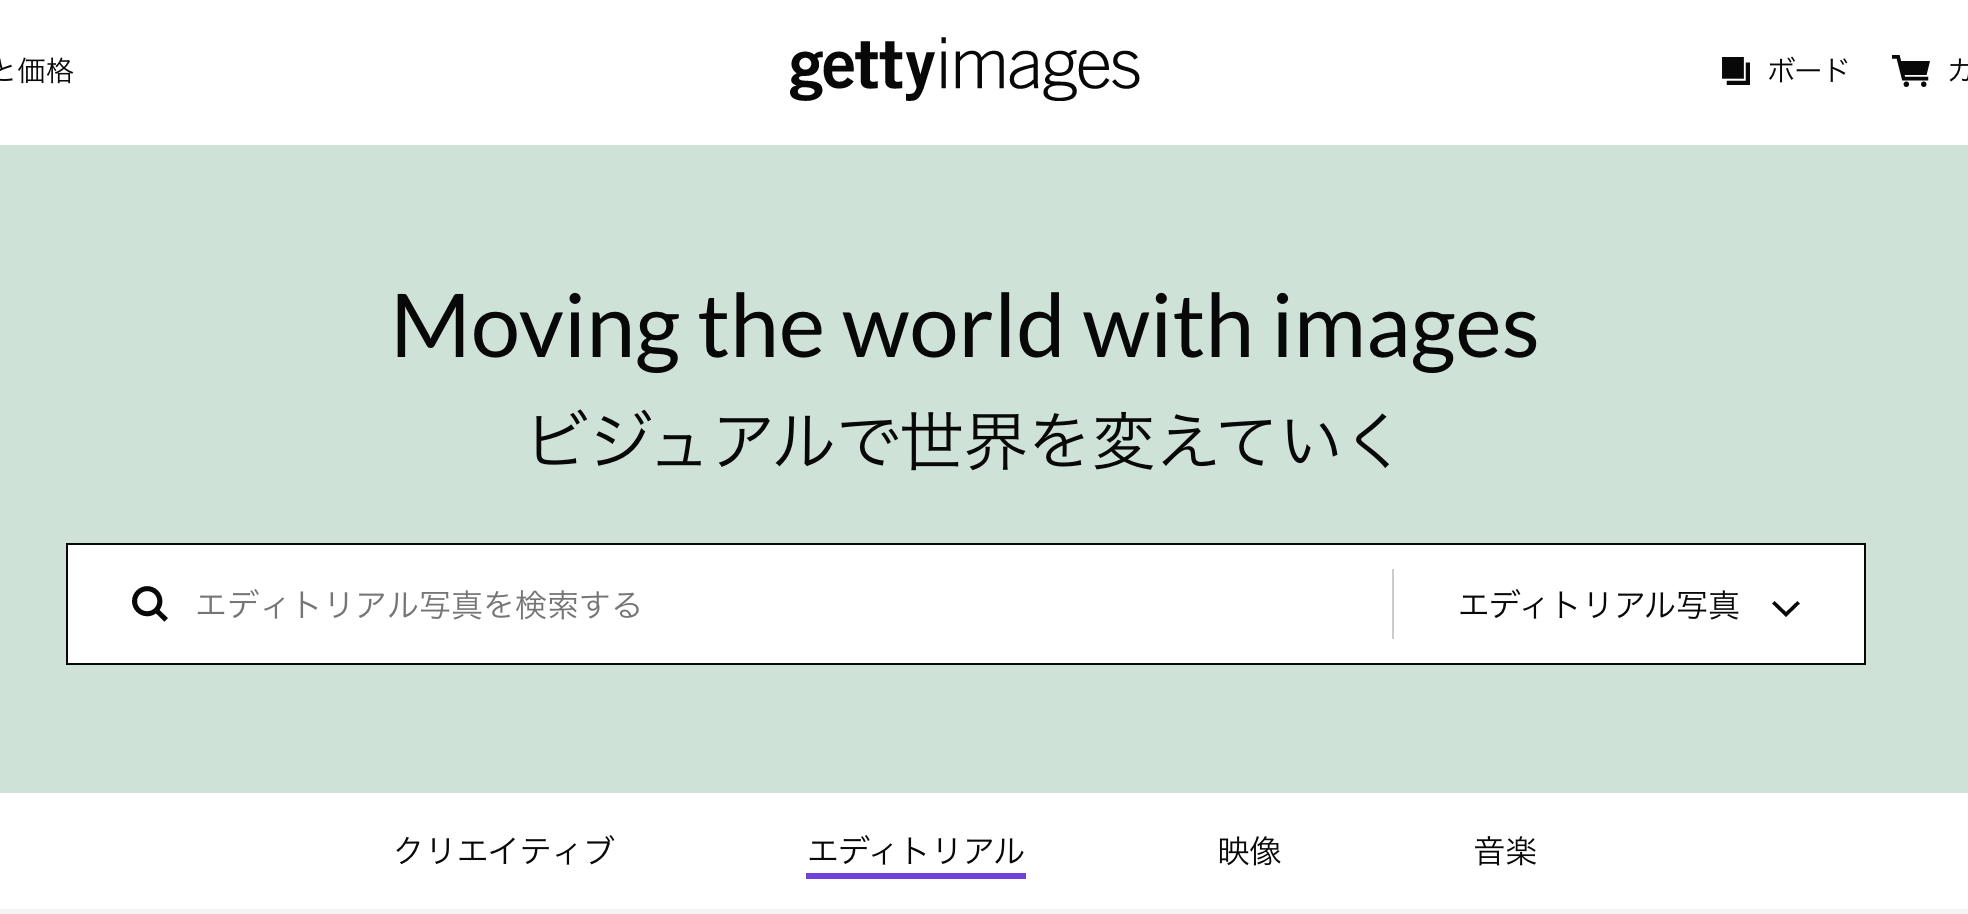 Getty Imagesホームページ